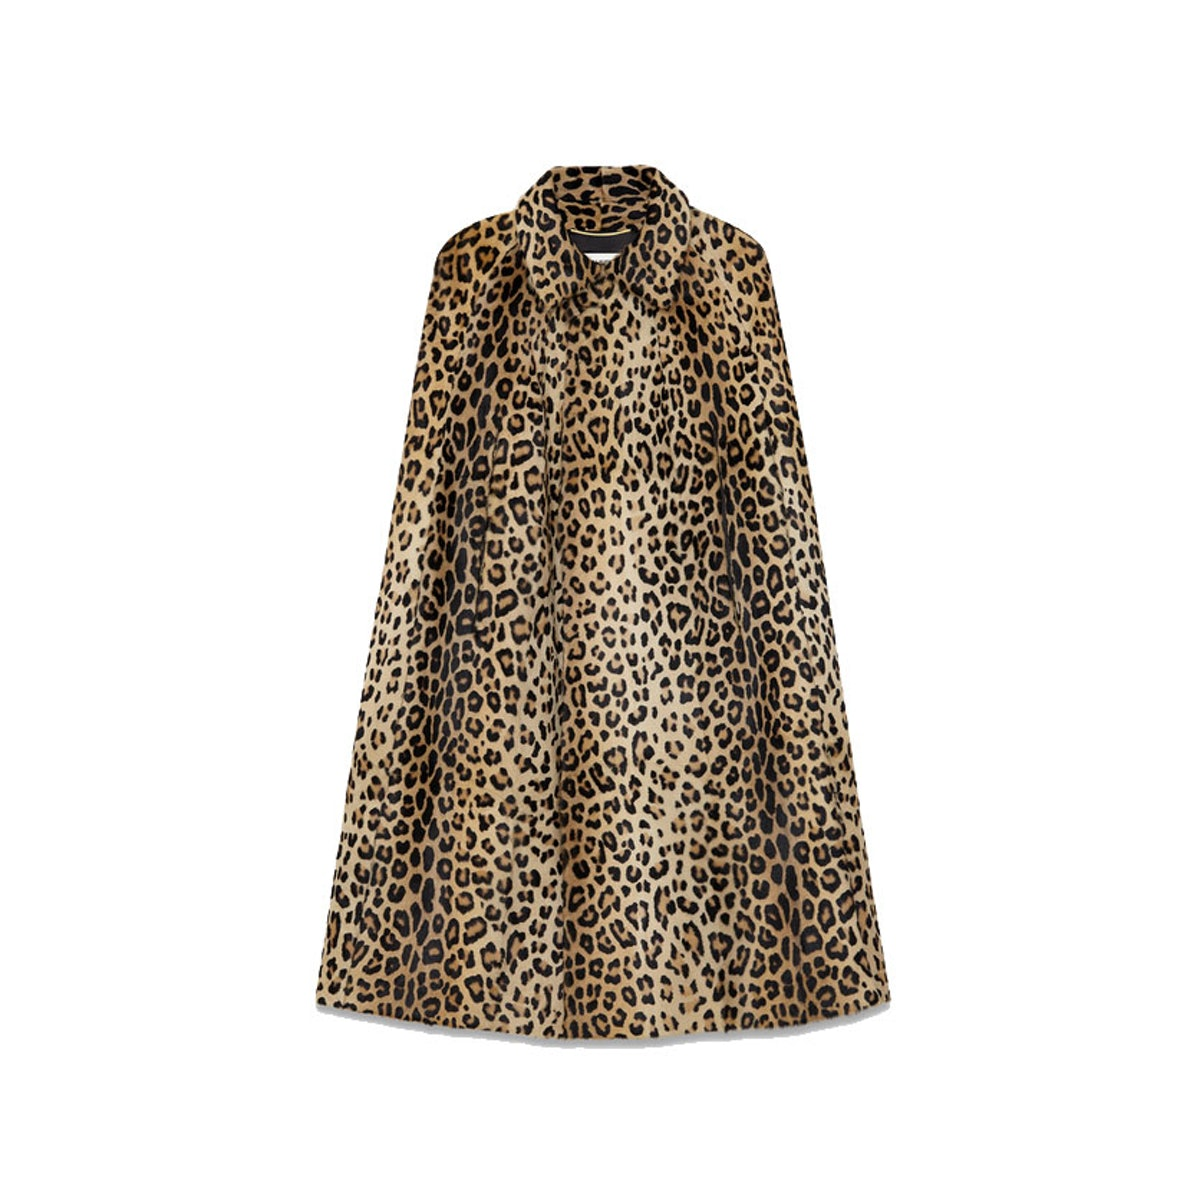 Saint Laurent Cape in Beige and Black punk leopard printed leather